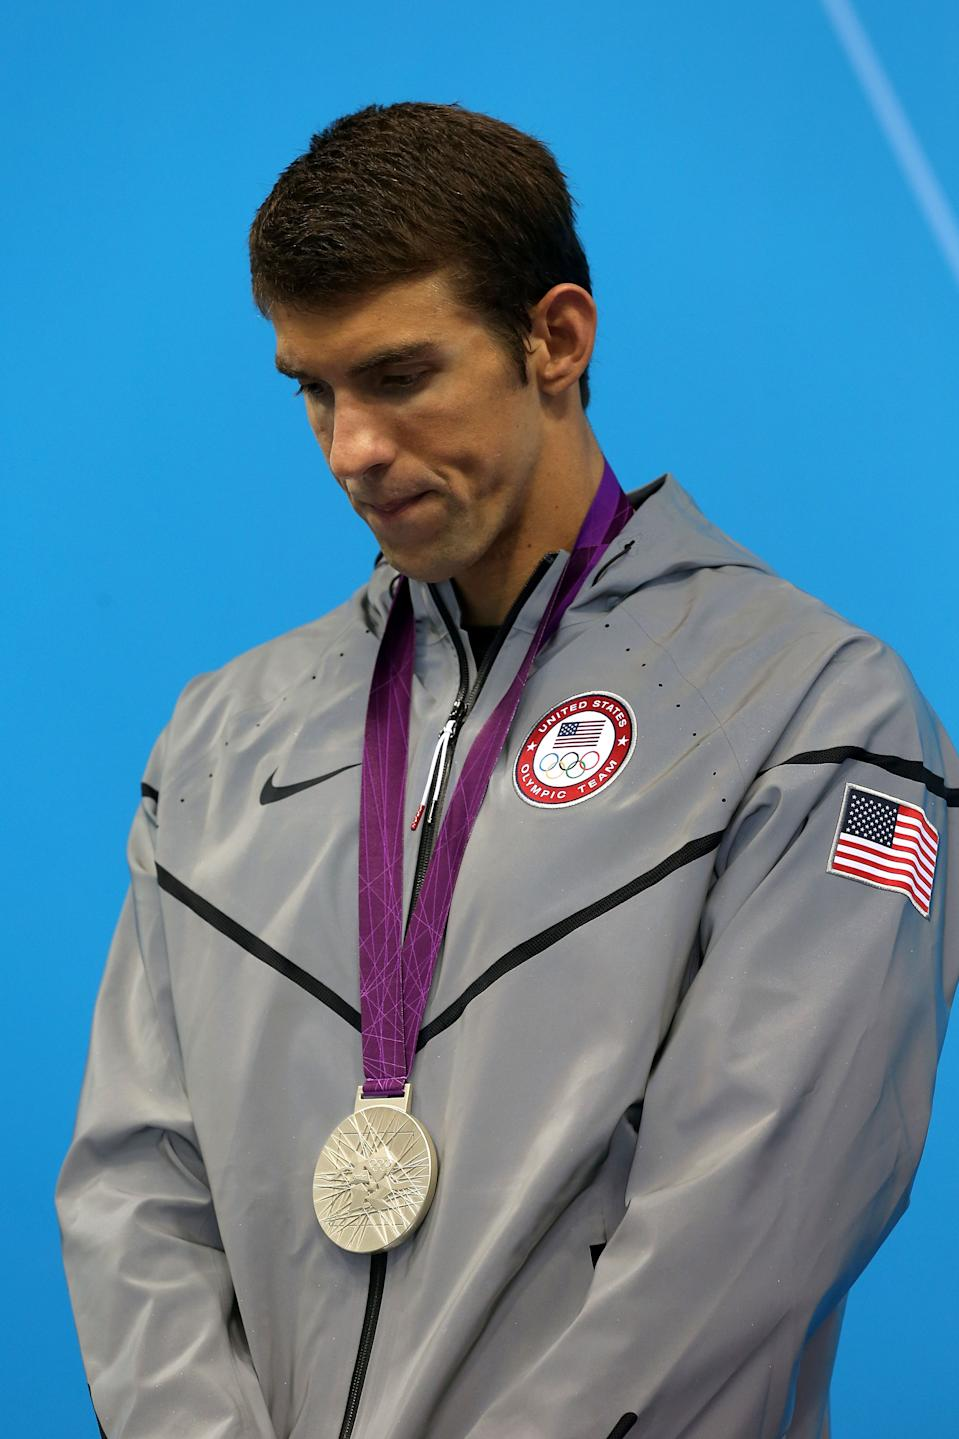 LONDON, ENGLAND - JULY 31: Silver medallist Michael Phelps of the United States poses on the podium during the medal ceremony for the Men's 200m Butterfly final on Day 4 of the London 2012 Olympic Games at the Aquatics Centre on July 31, 2012 in London, England. (Photo by Clive Rose/Getty Images)